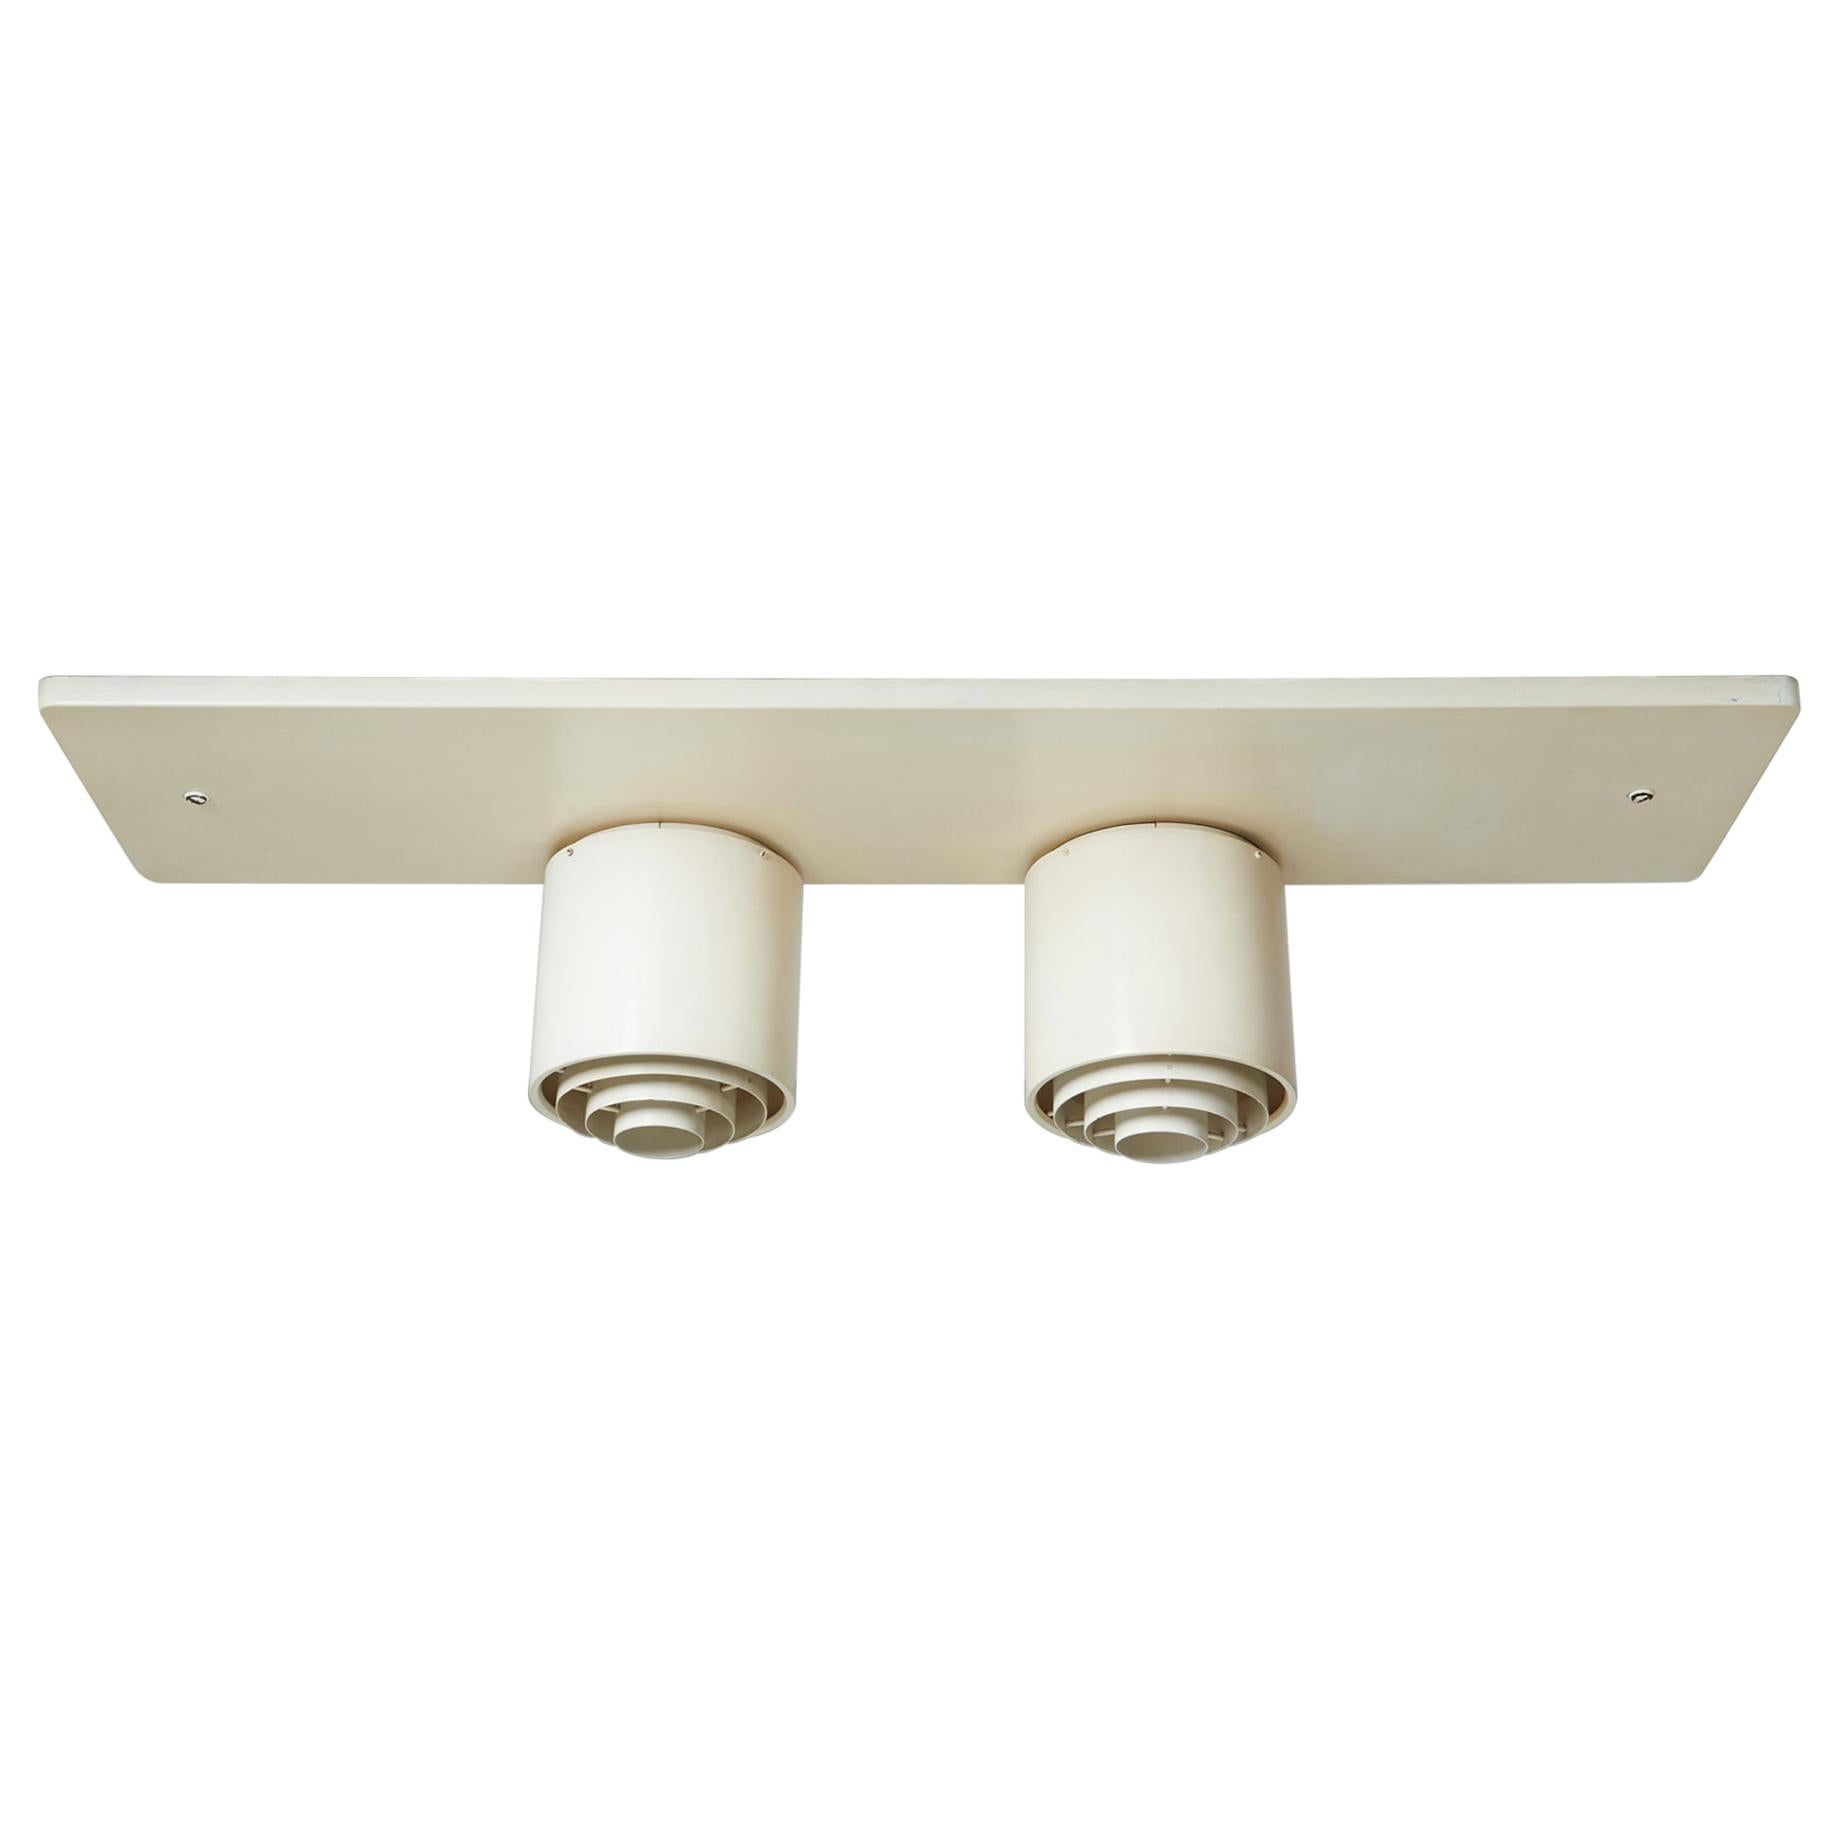 Ceiling Lamp Designed by Alvar Aalto for Idman, Finland, 1950s